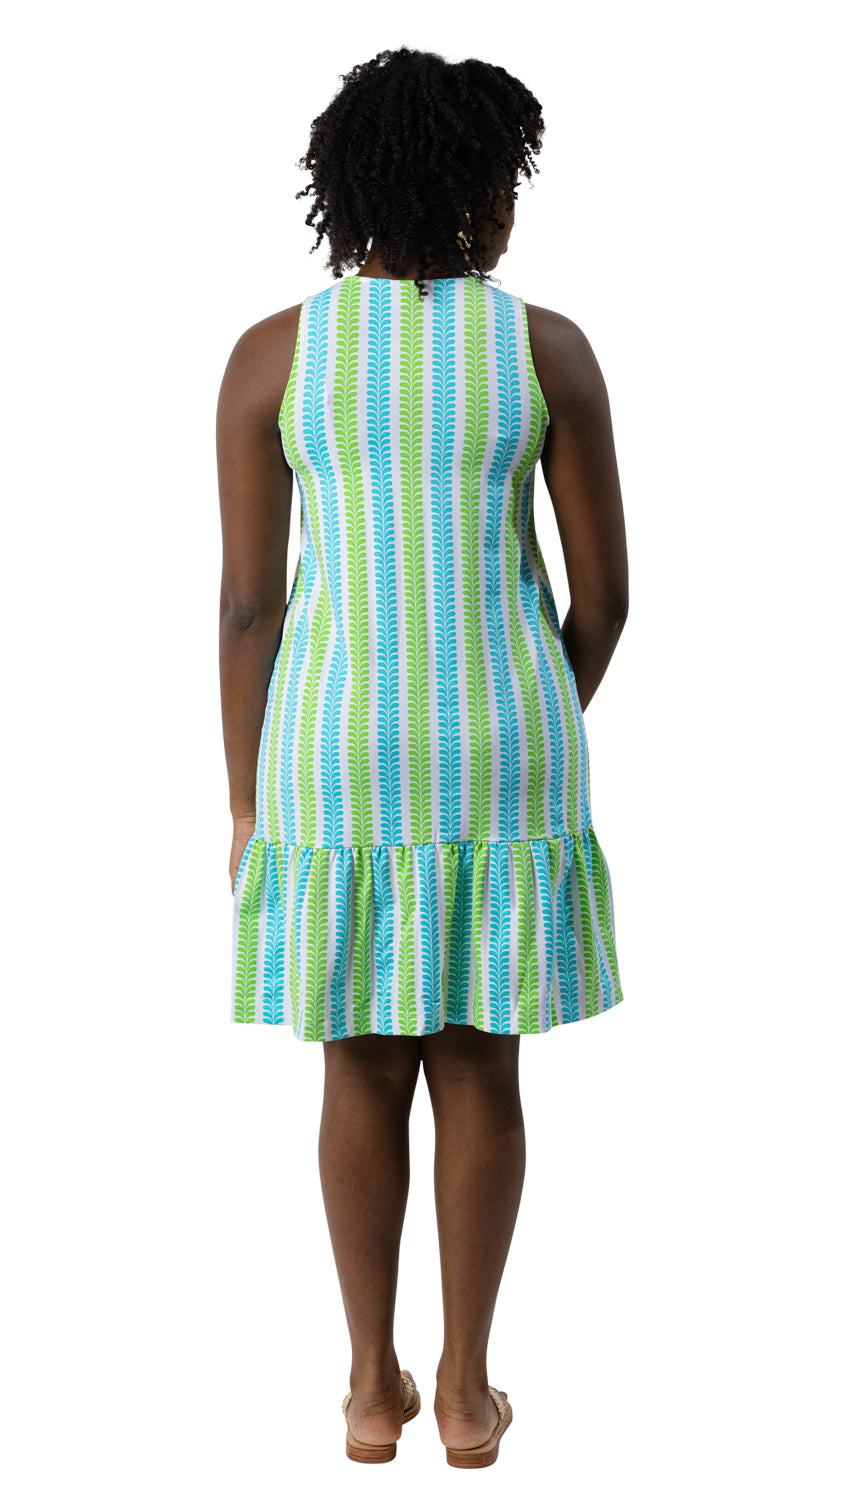 Ellie Dress - Vertical Vines Blue/Green